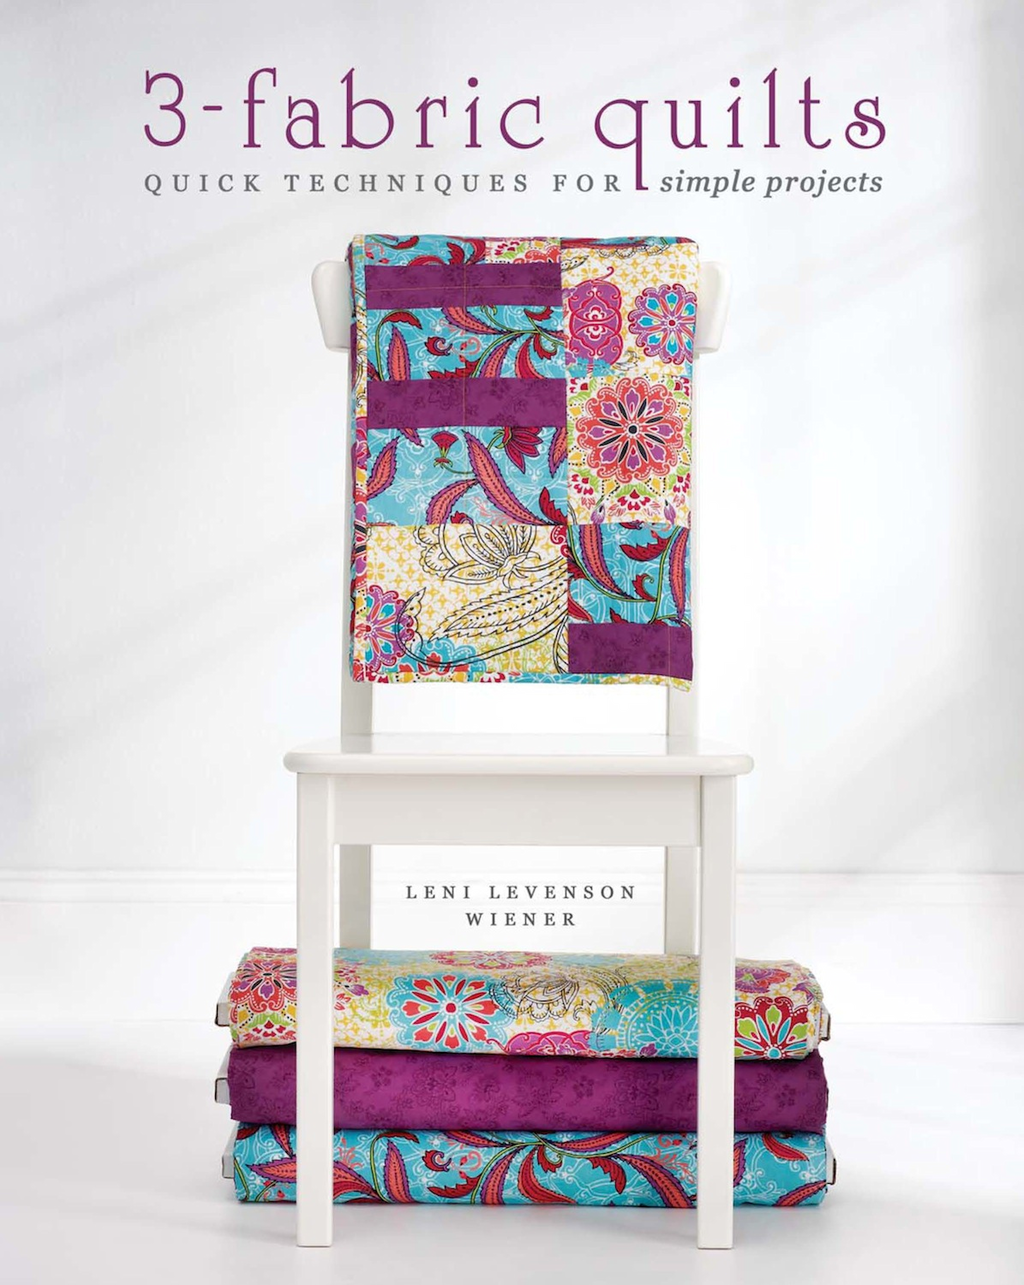 3-Fabric Quilts By: Leni Levenson Wiener